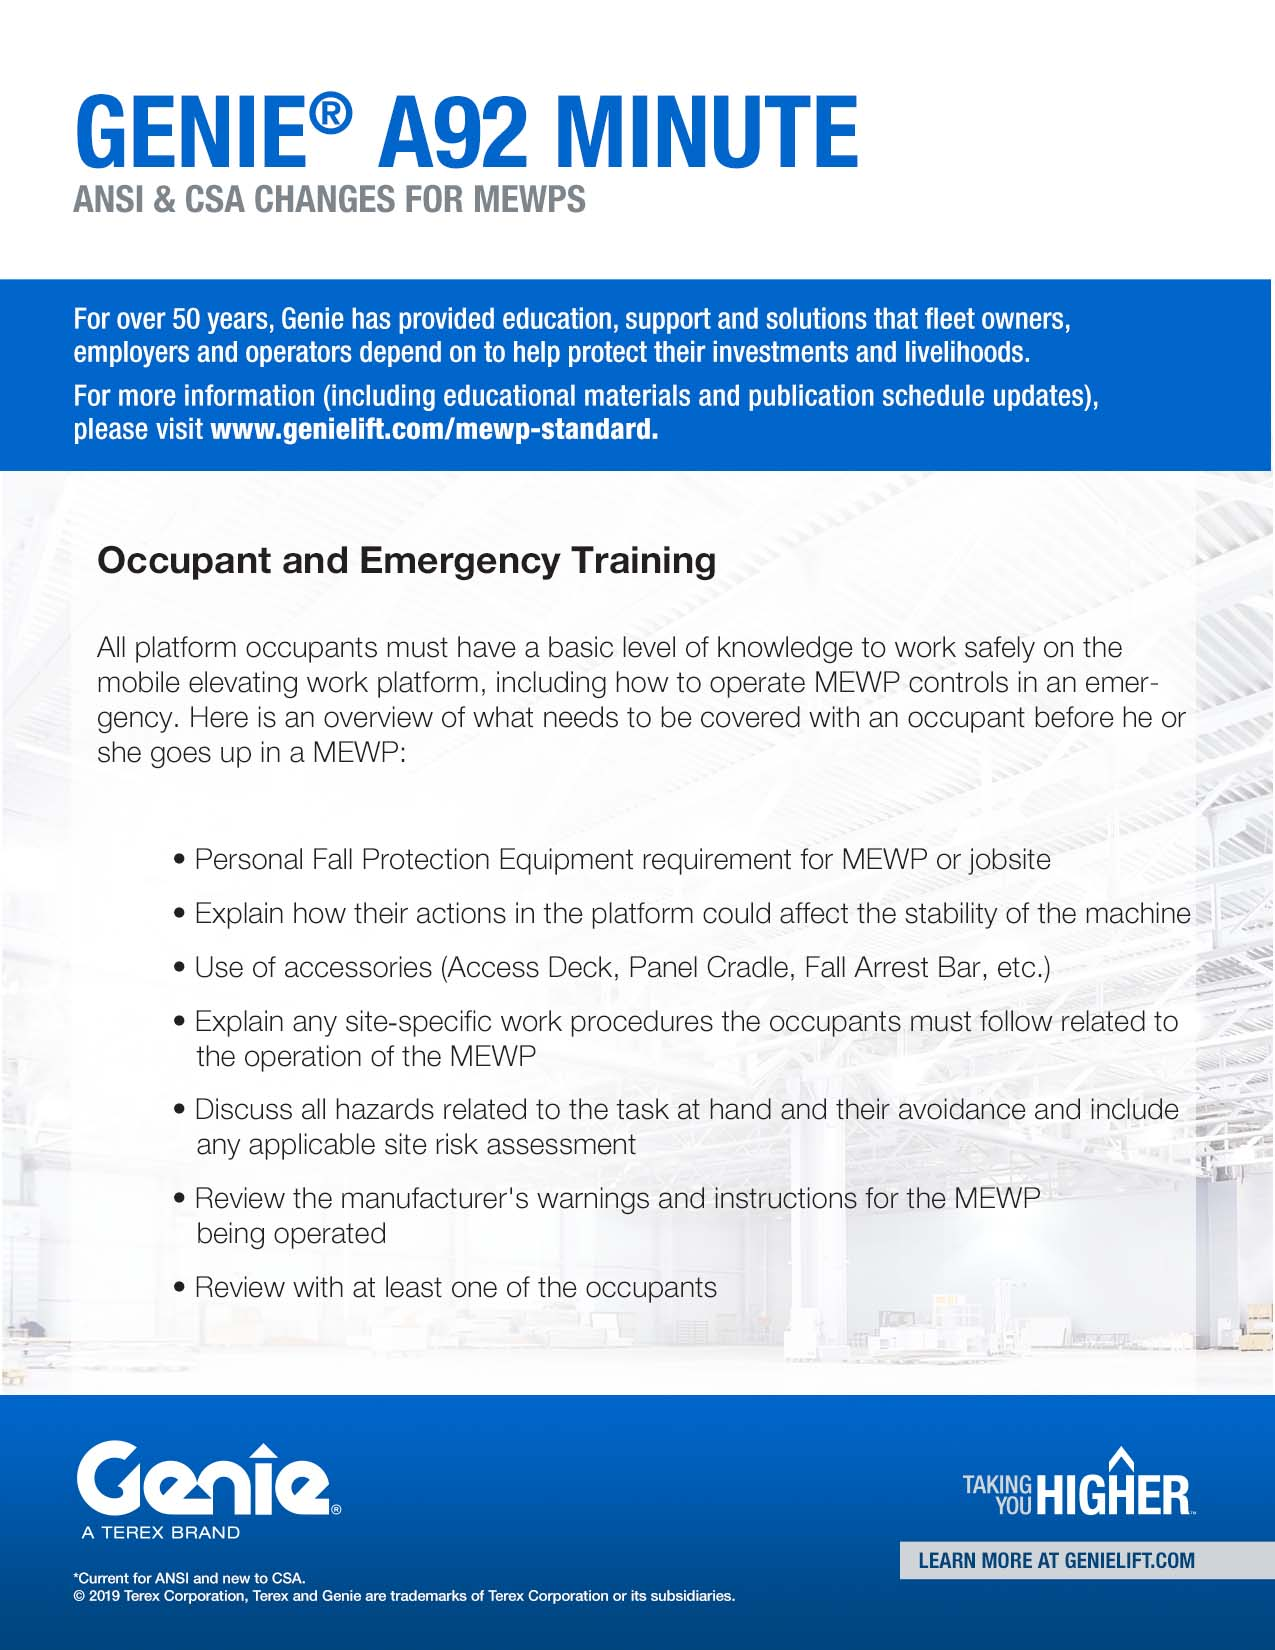 A92 Minute - Occupant and Emergency Training